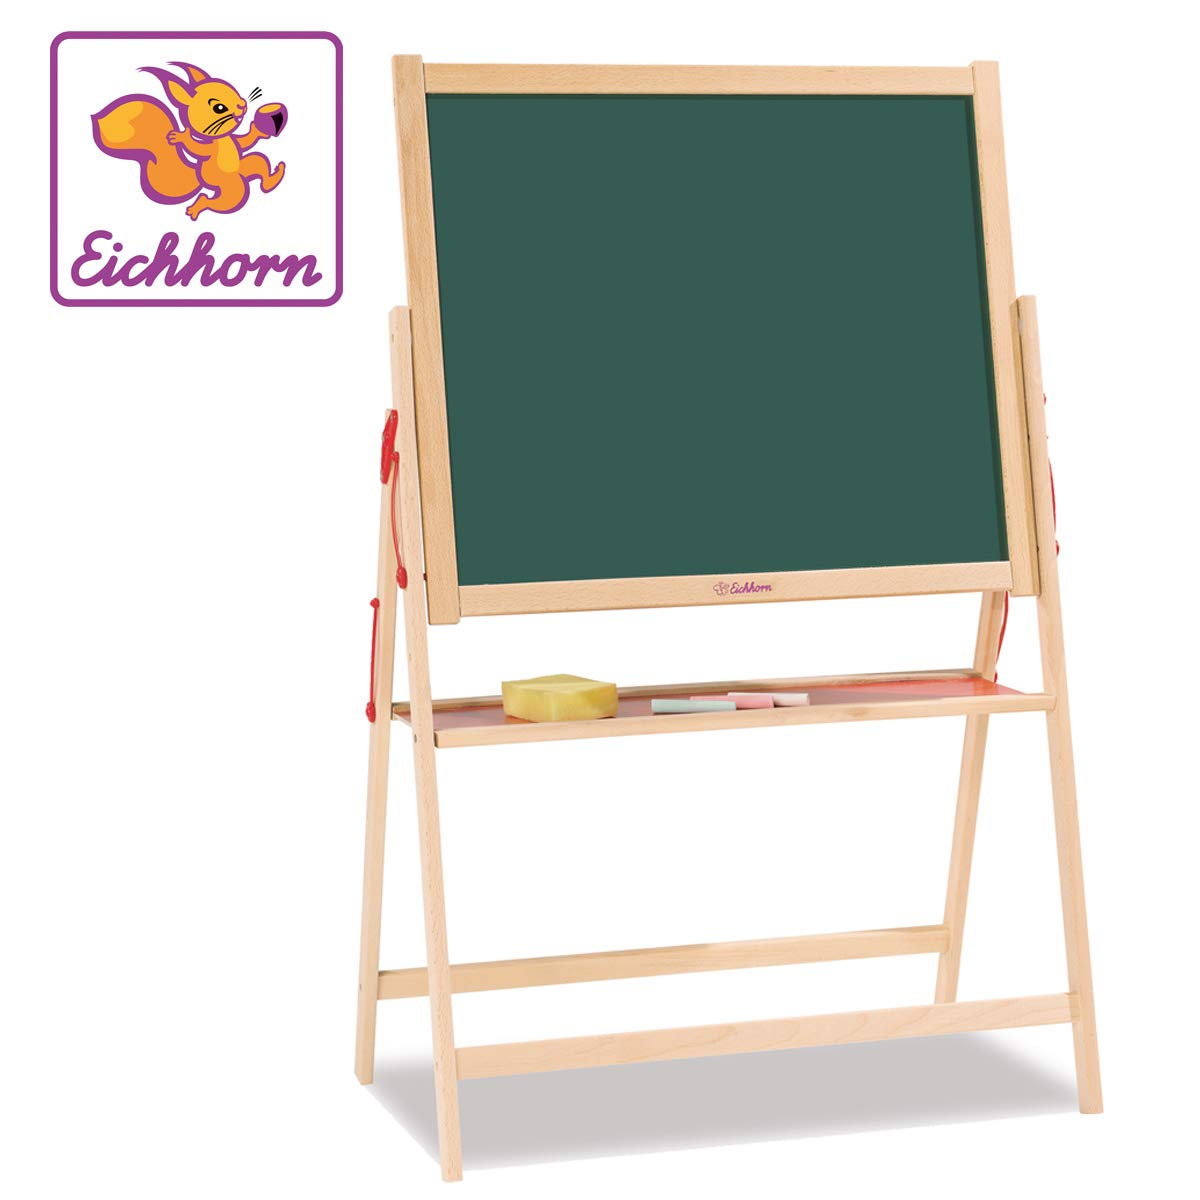 Eichhorn 100002578 Magnetic Board 35 x 56 x 87 cm with 10 Chalks 1 Sponge Beech Wood by Eichhorn